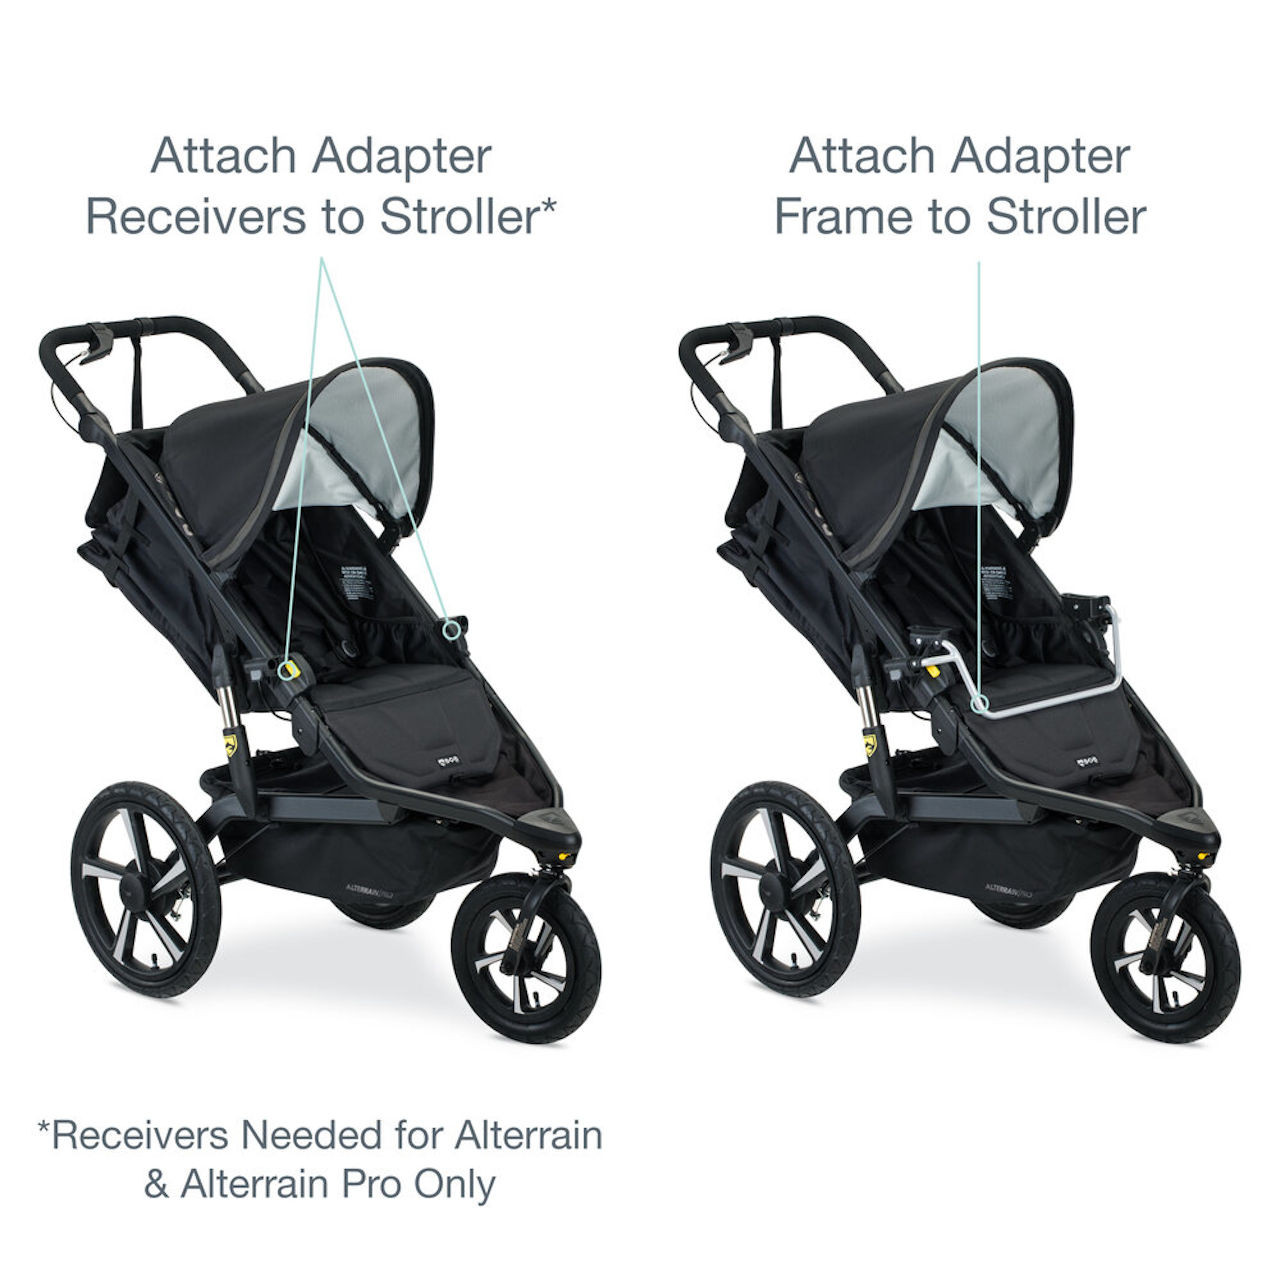 New 2020 Britax Single Infant Car Seat Adapter - Adpaters Required For Alterrain & Alterrain Pro